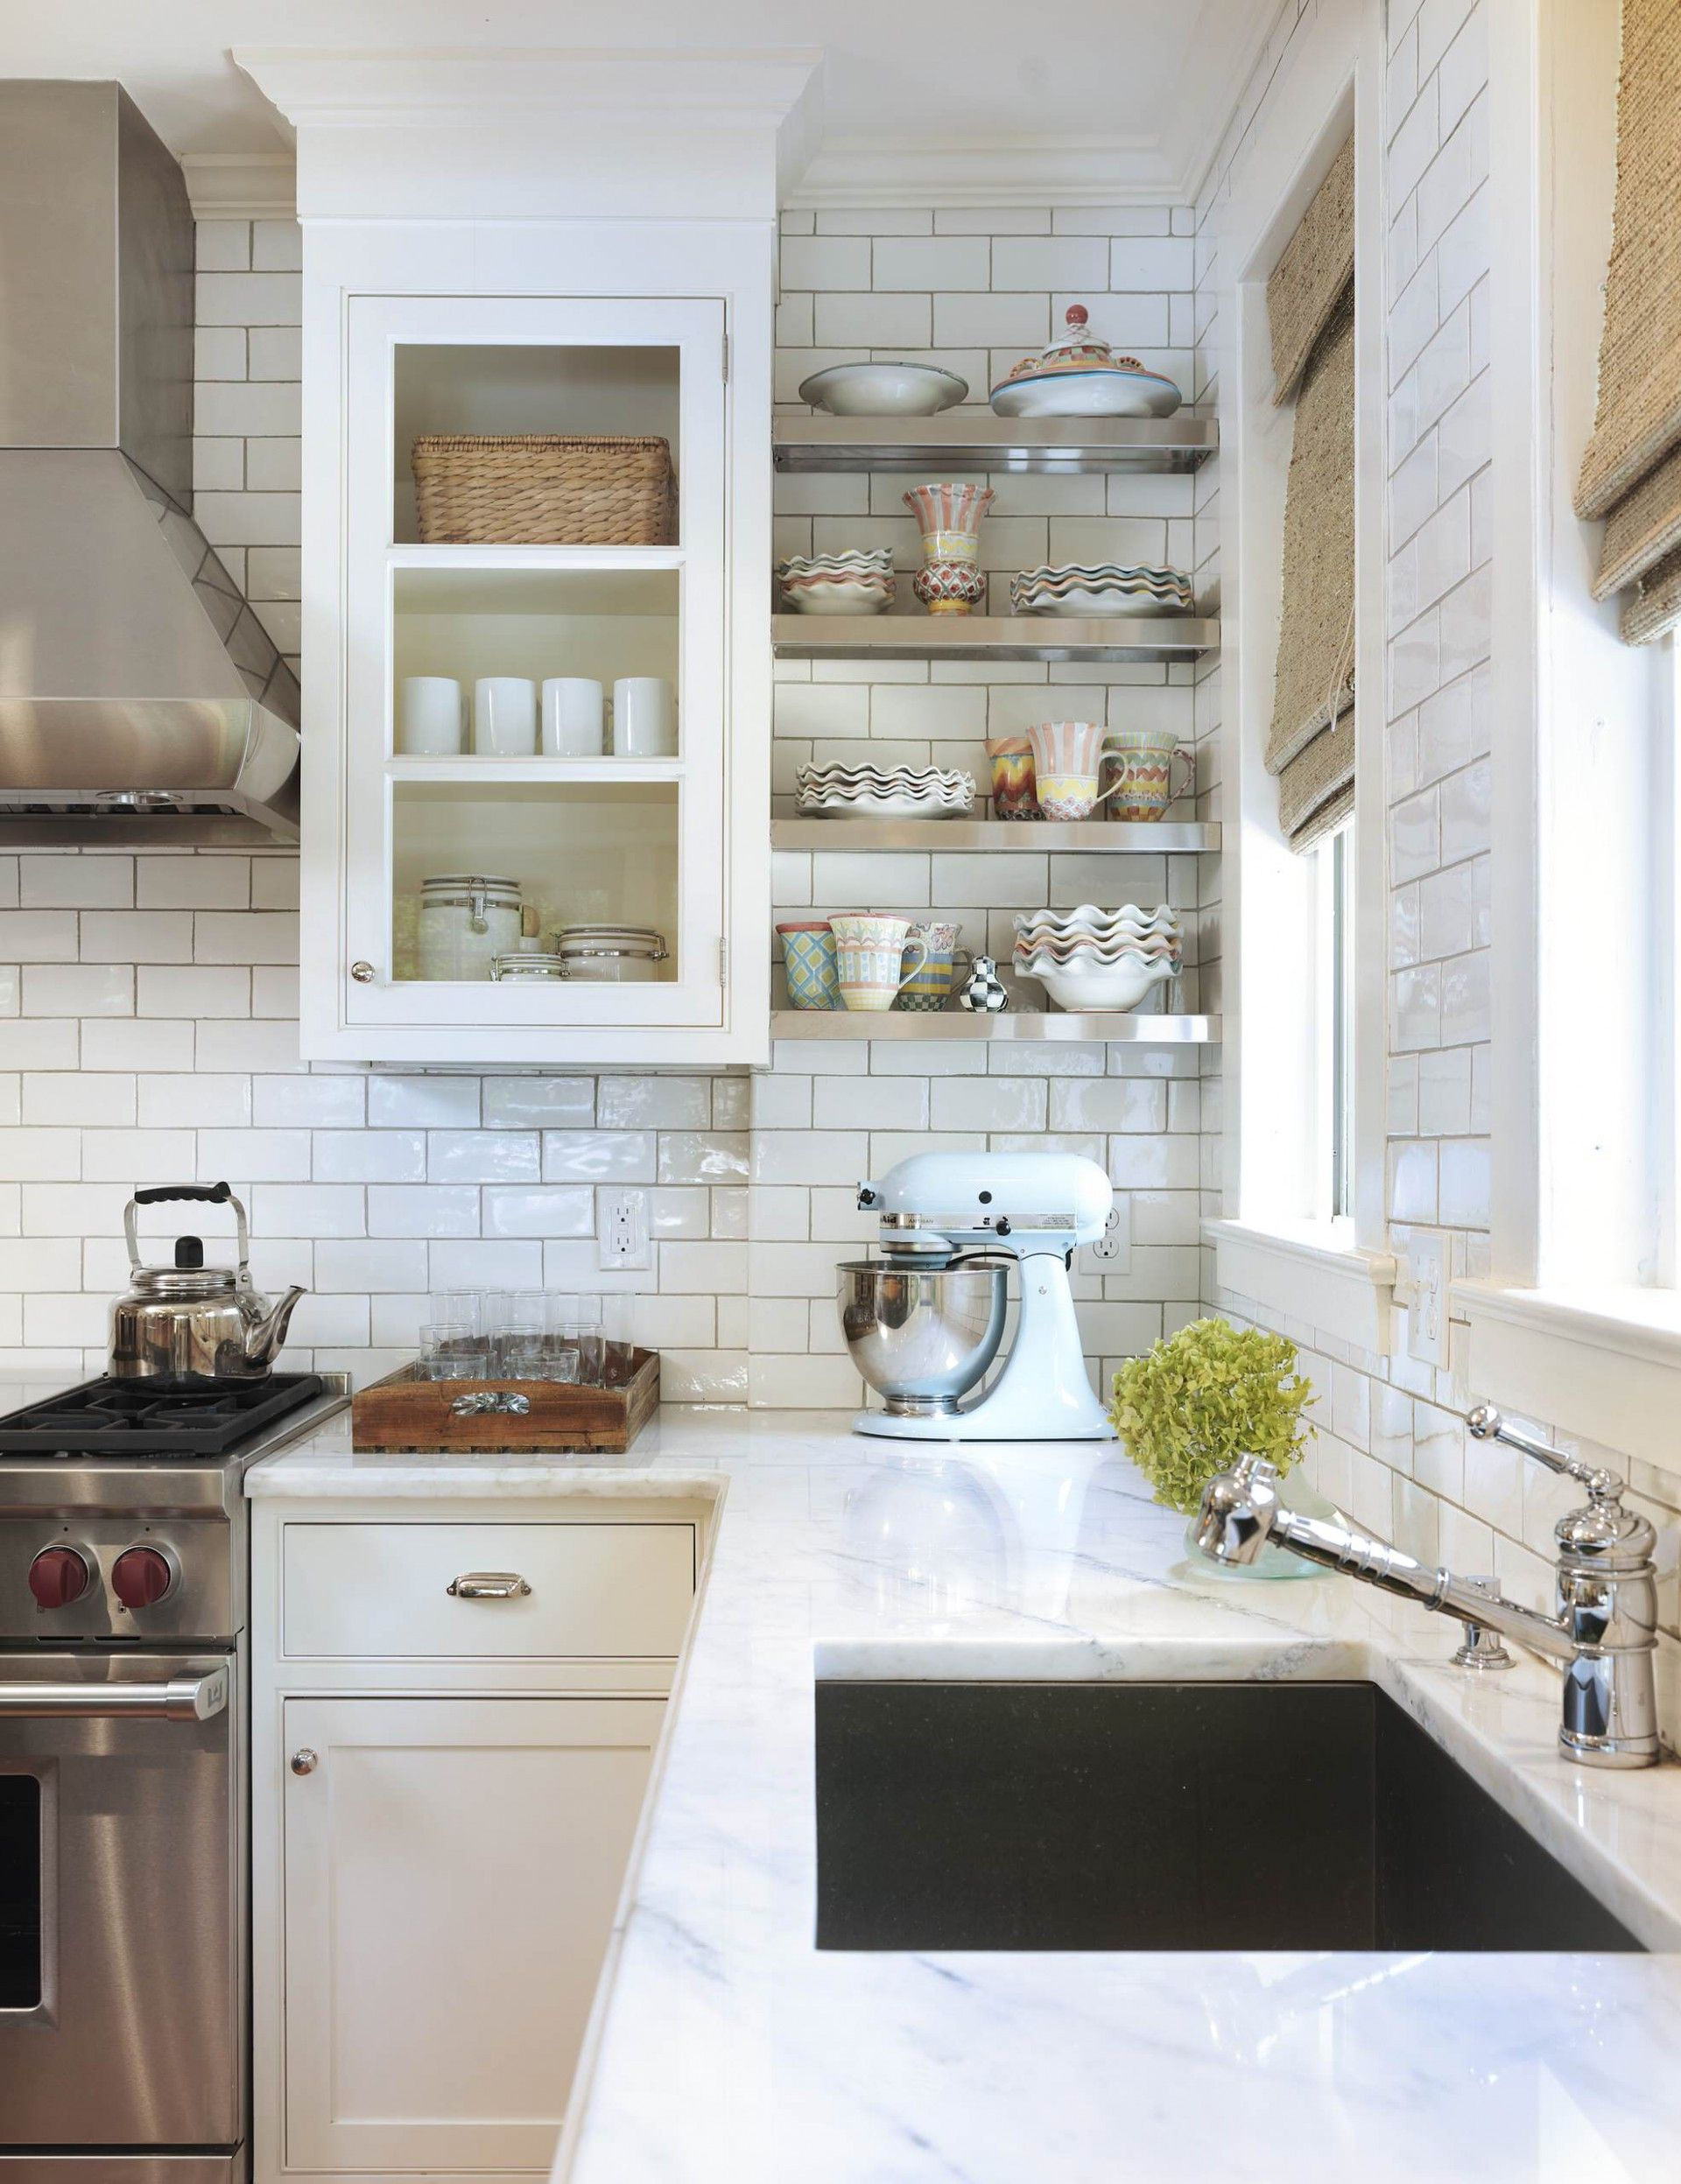 Picture of White Ceramic Subway Tile Backsplash Design